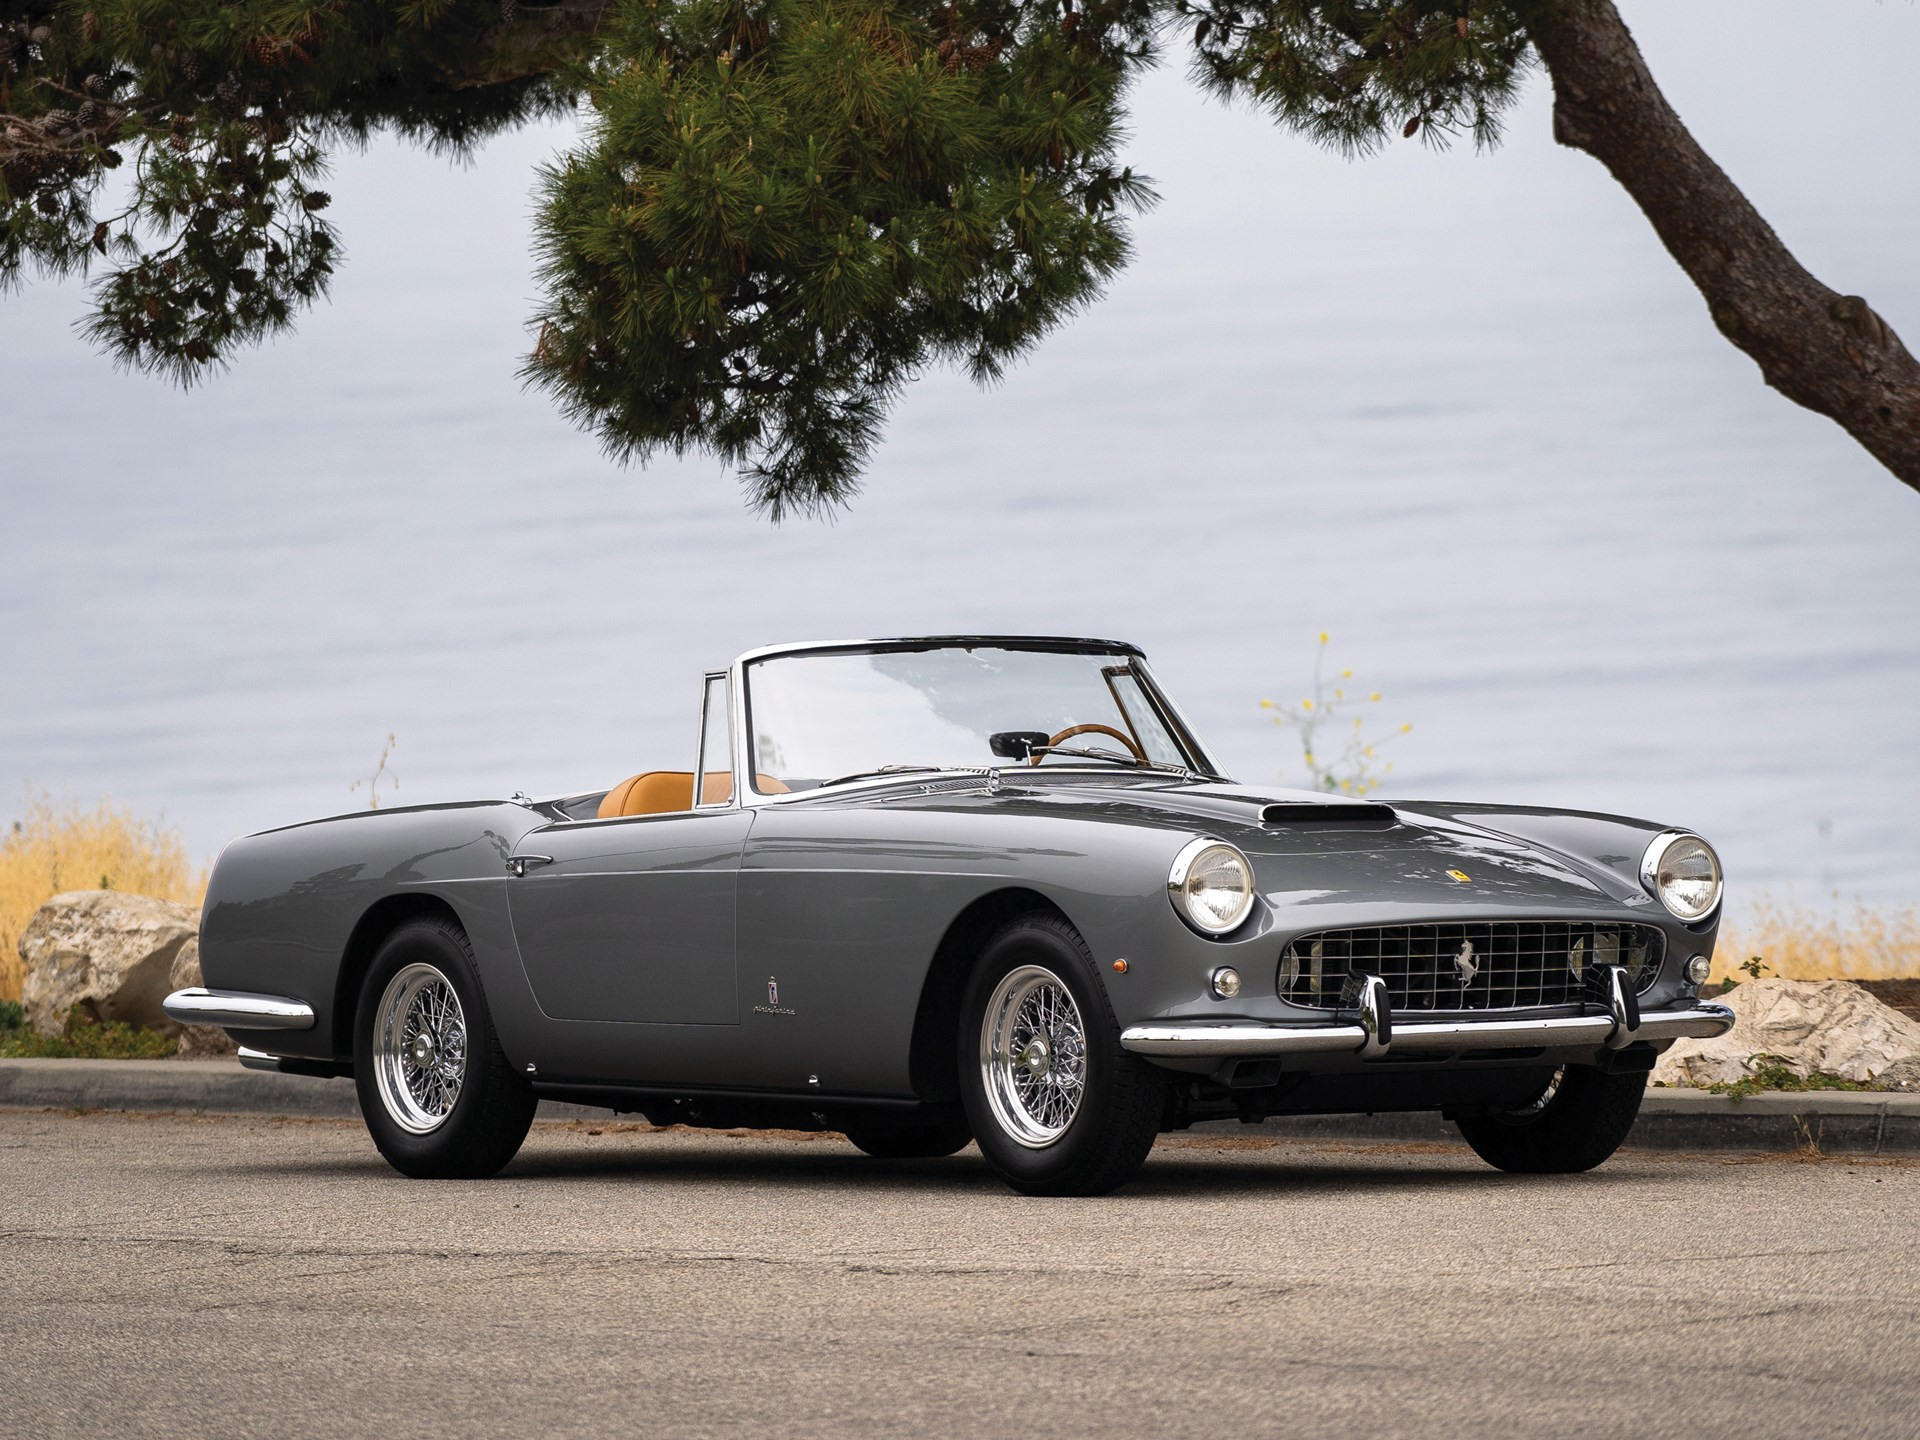 Image result for RM amelia 2020 ferrari series cabriolet